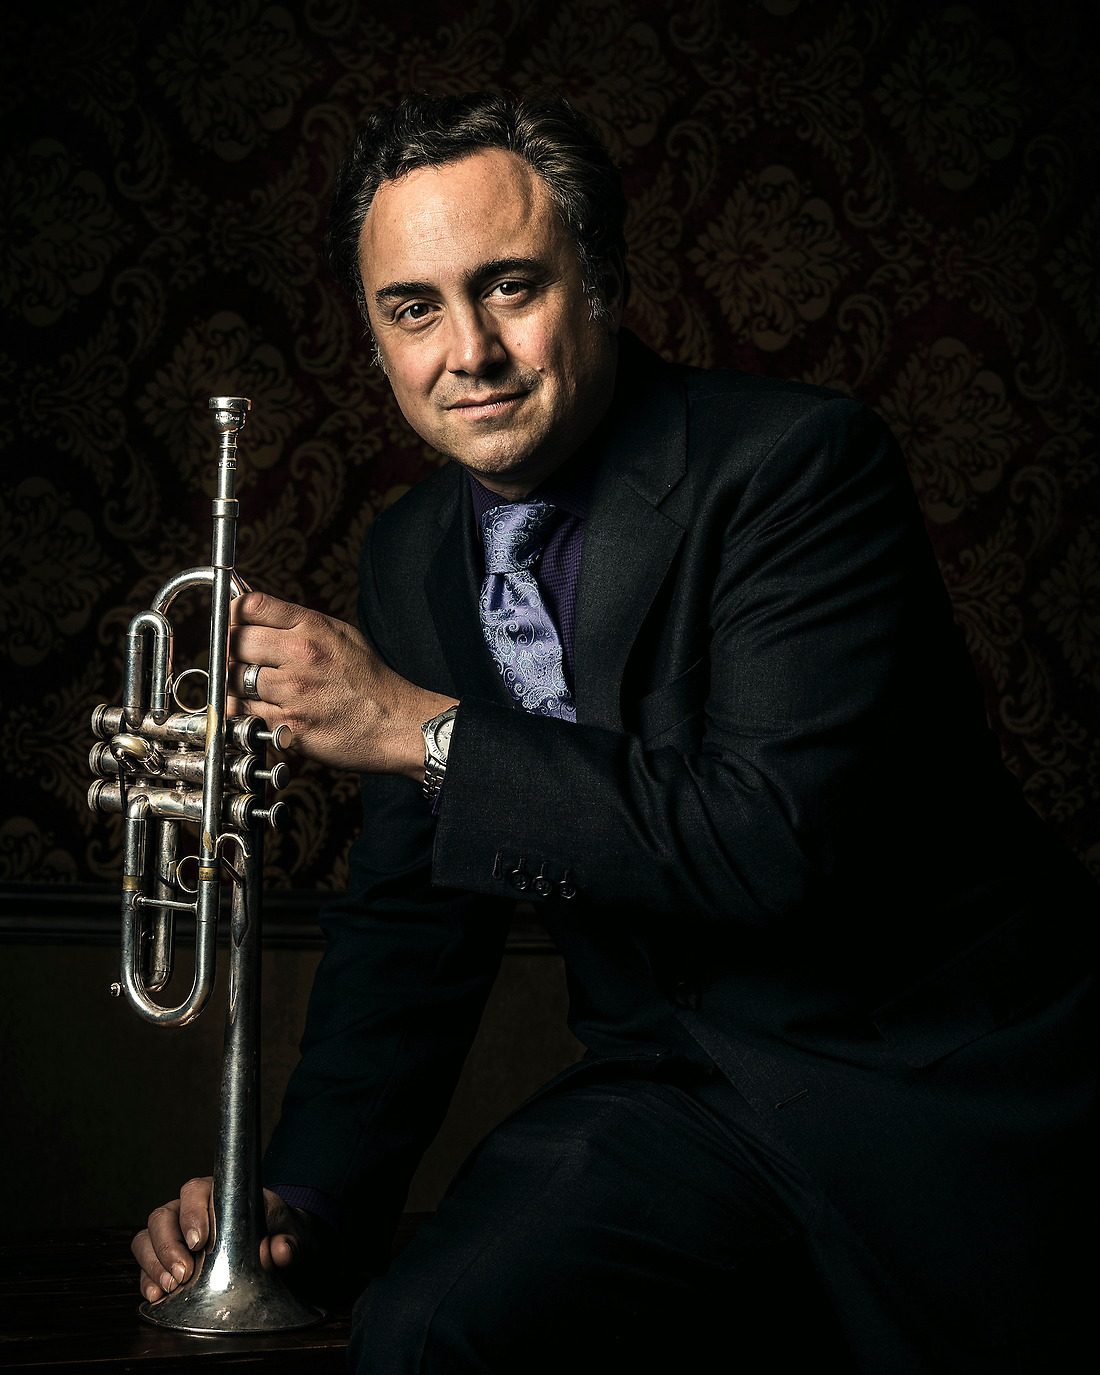 Anthony DiLorenzo National Trumpet Freelancer and Composer. — © Jeremy Lock/